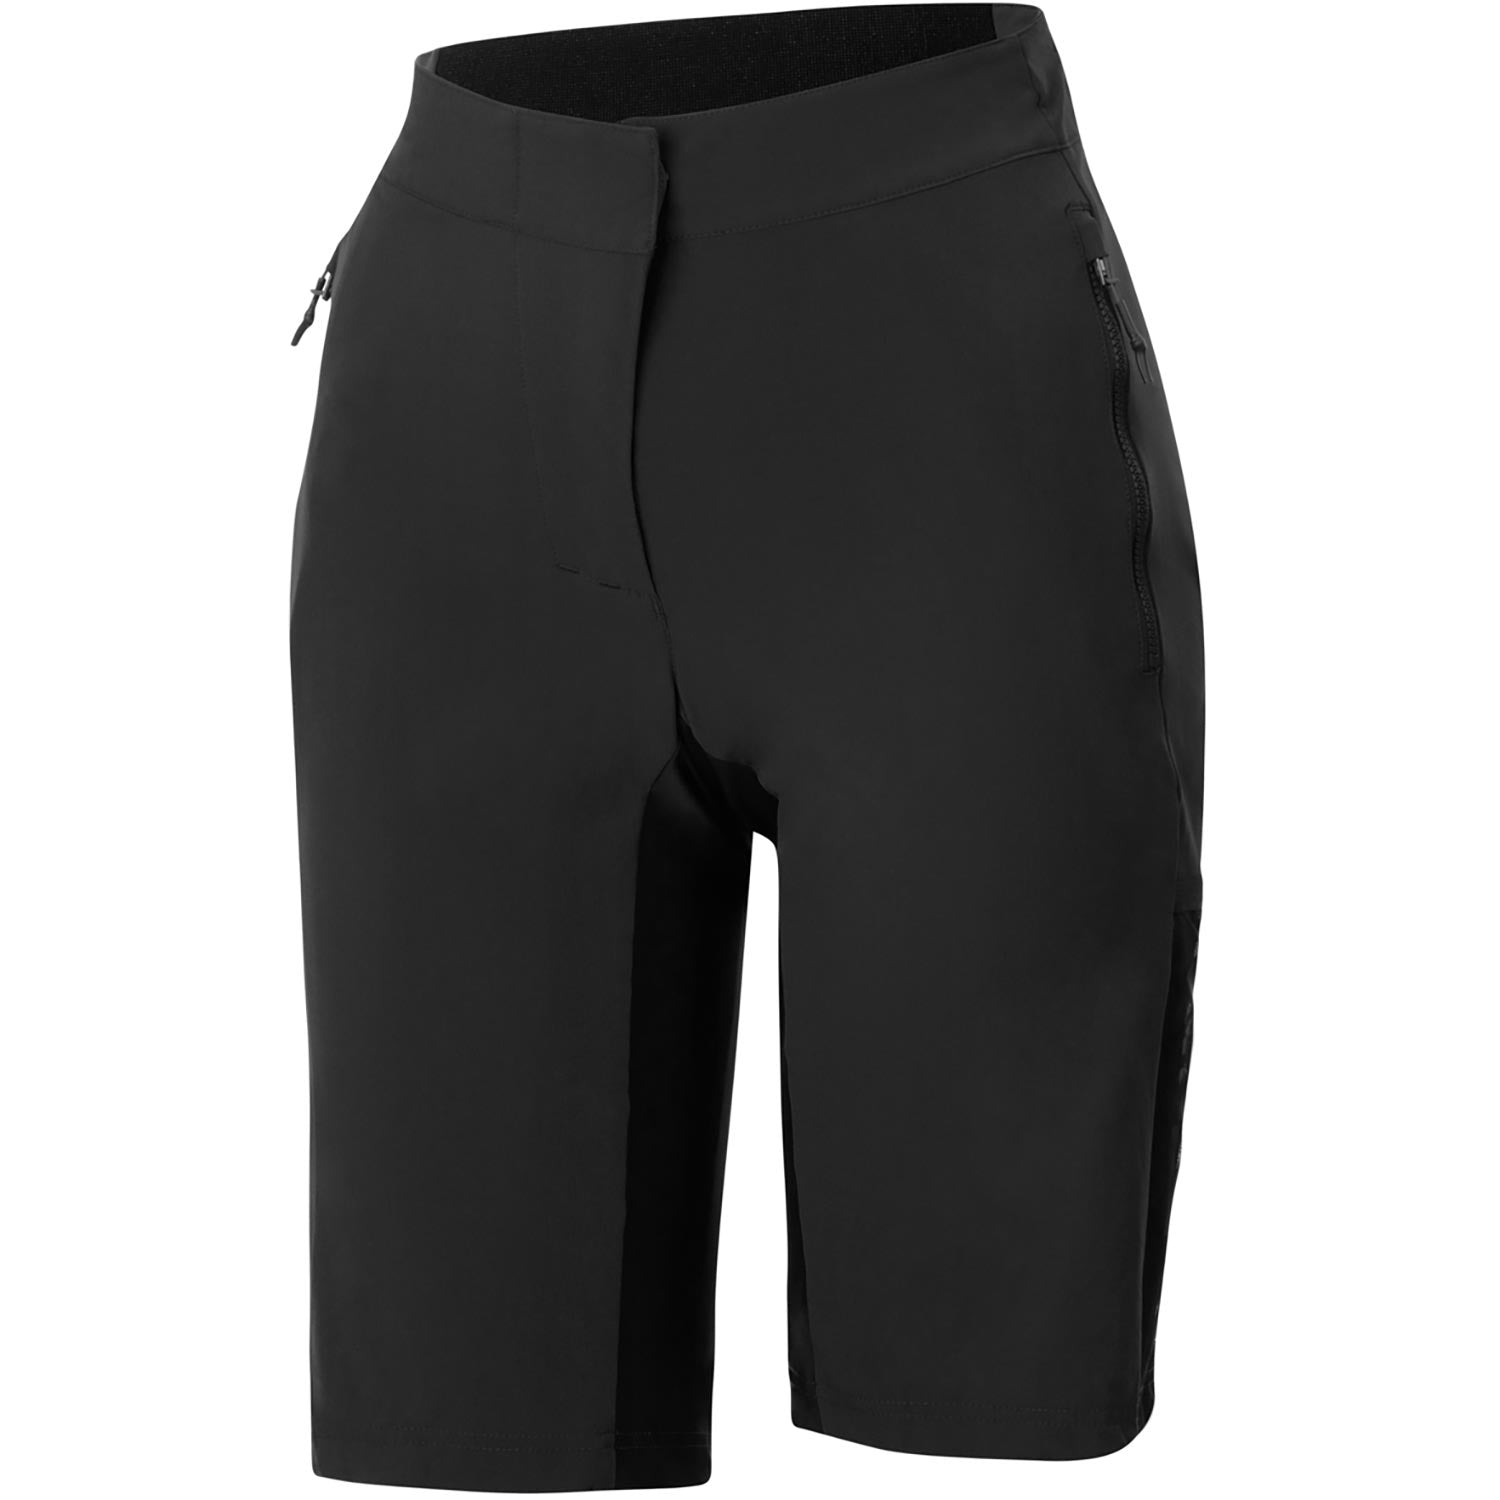 Sportful-Sportful Supergiara Women's Overshorts-Black-XS-SF205100021-saddleback-elite-performance-cycling